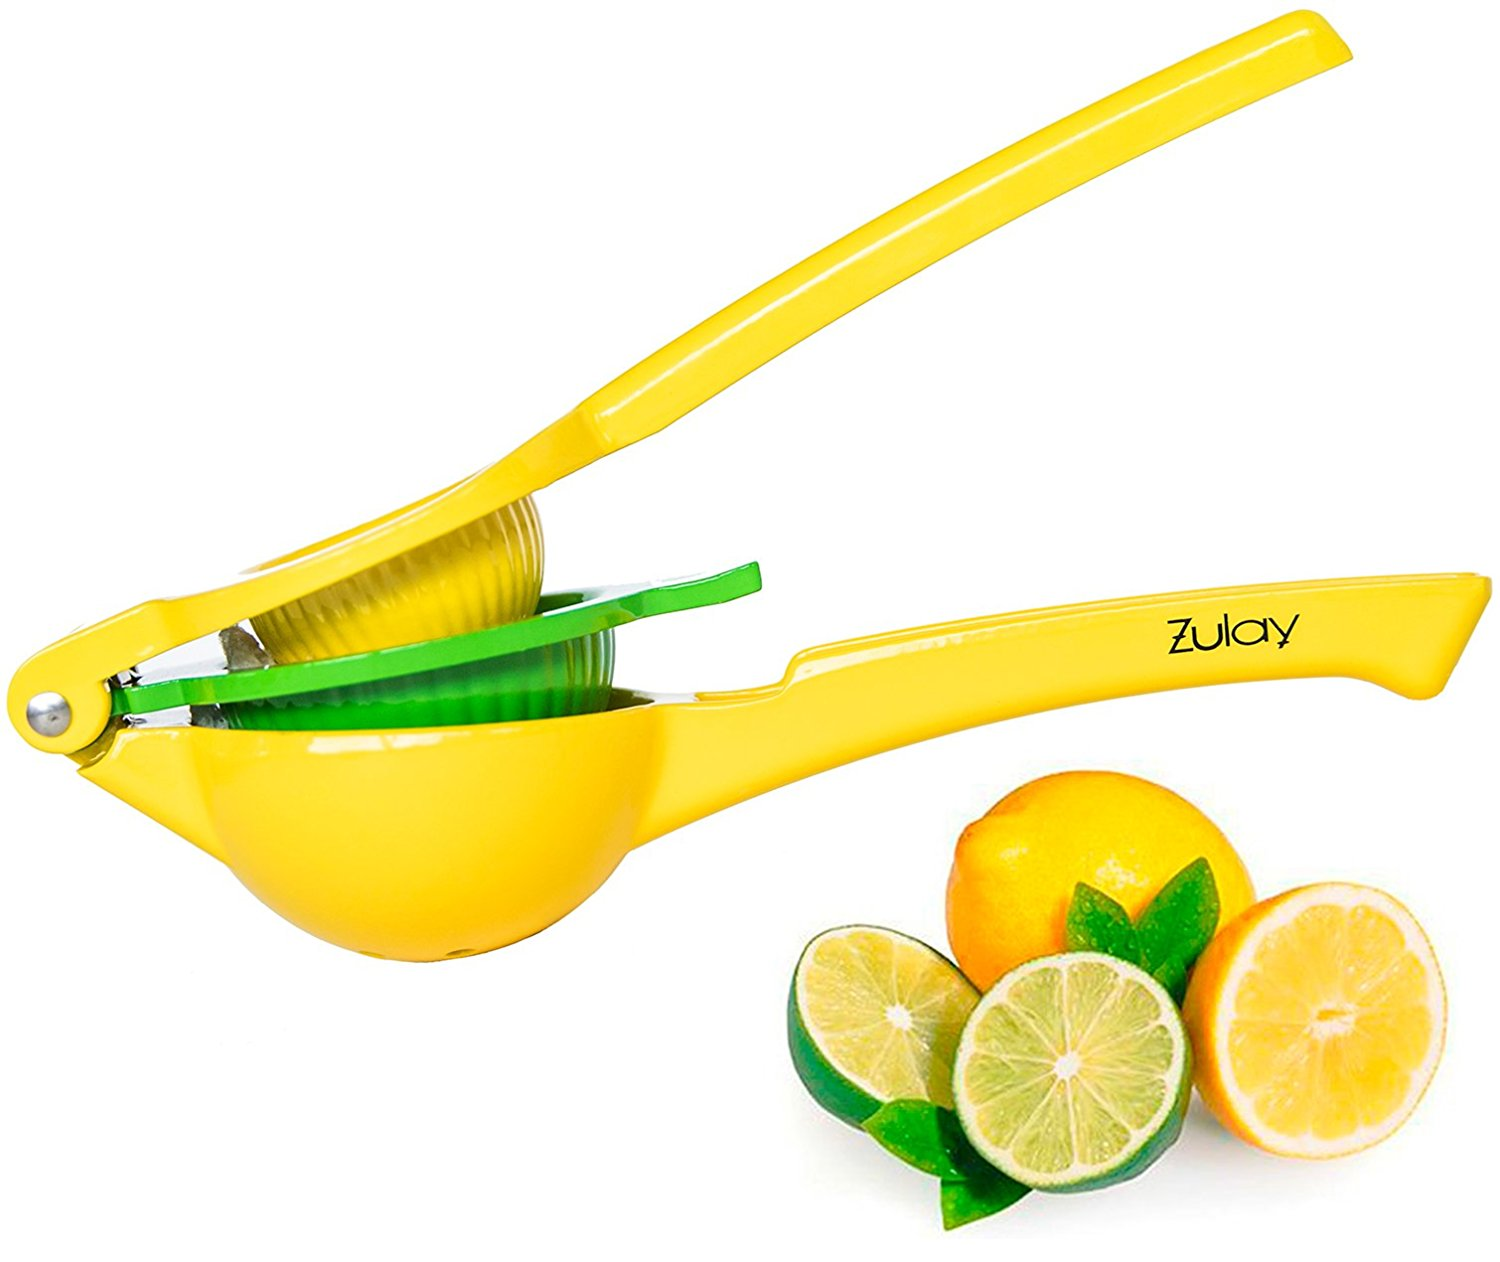 Zulay Kitchen Lemon Lime Squeezer